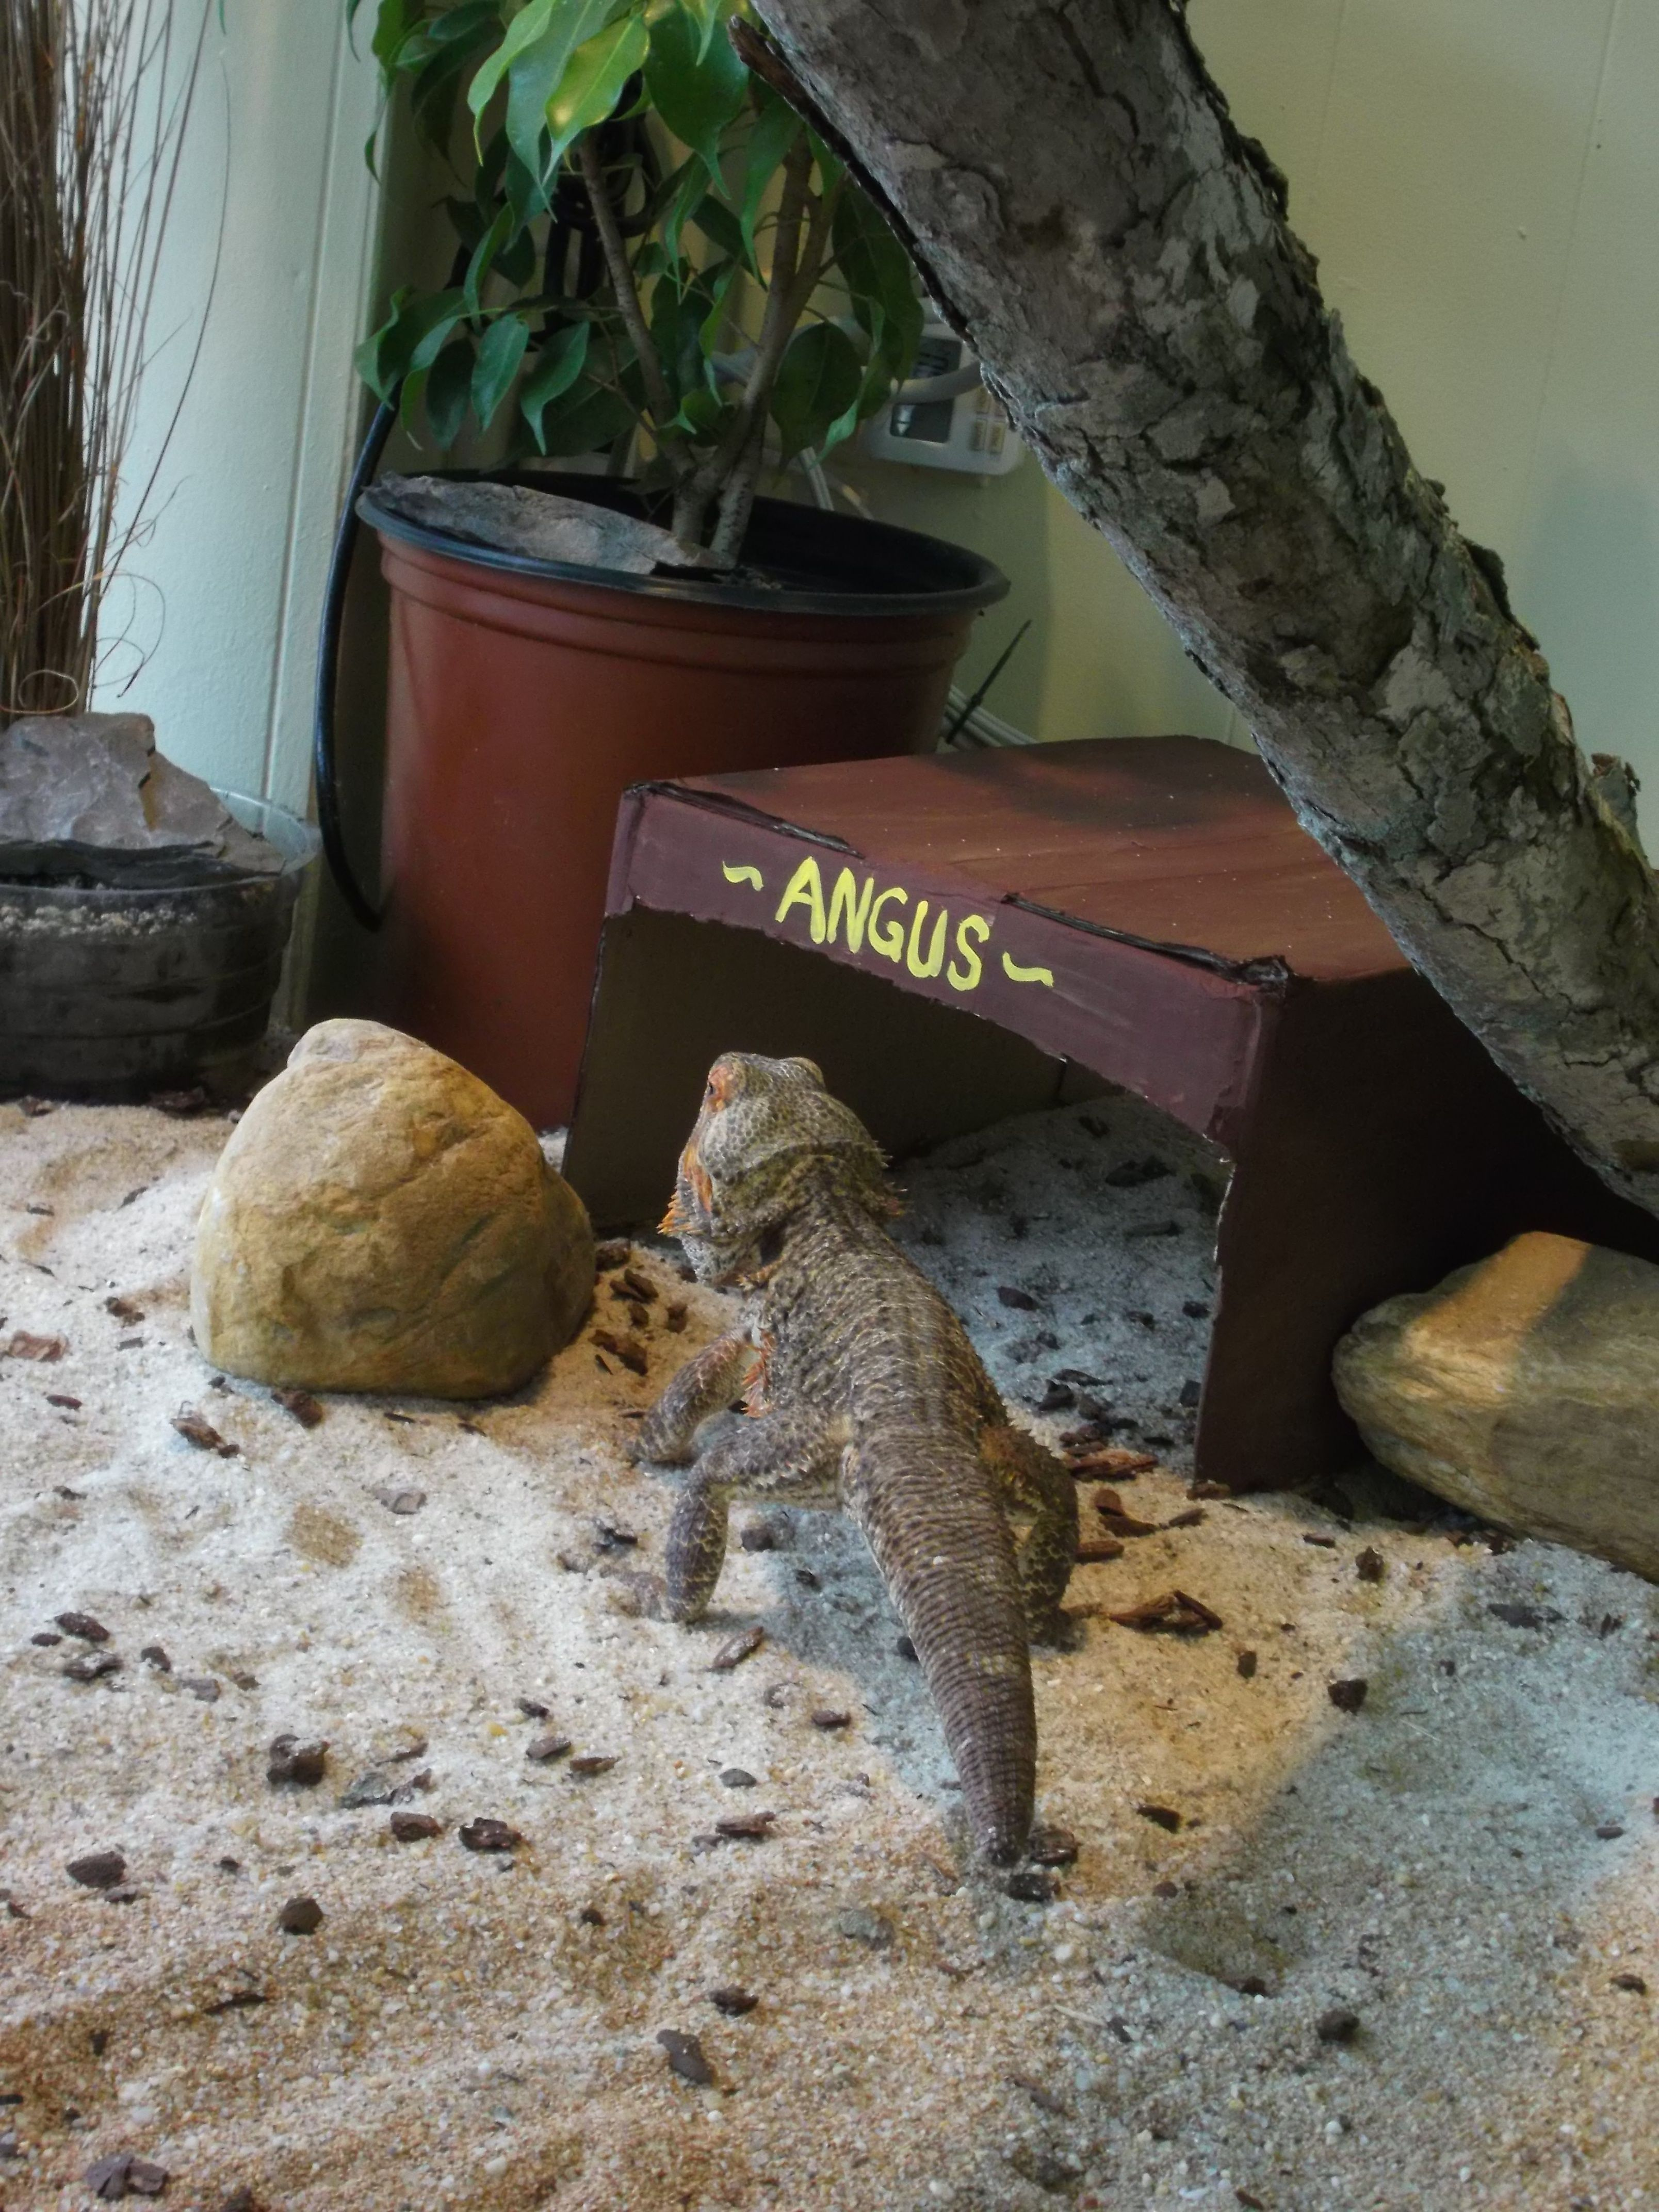 Angus checking out his house